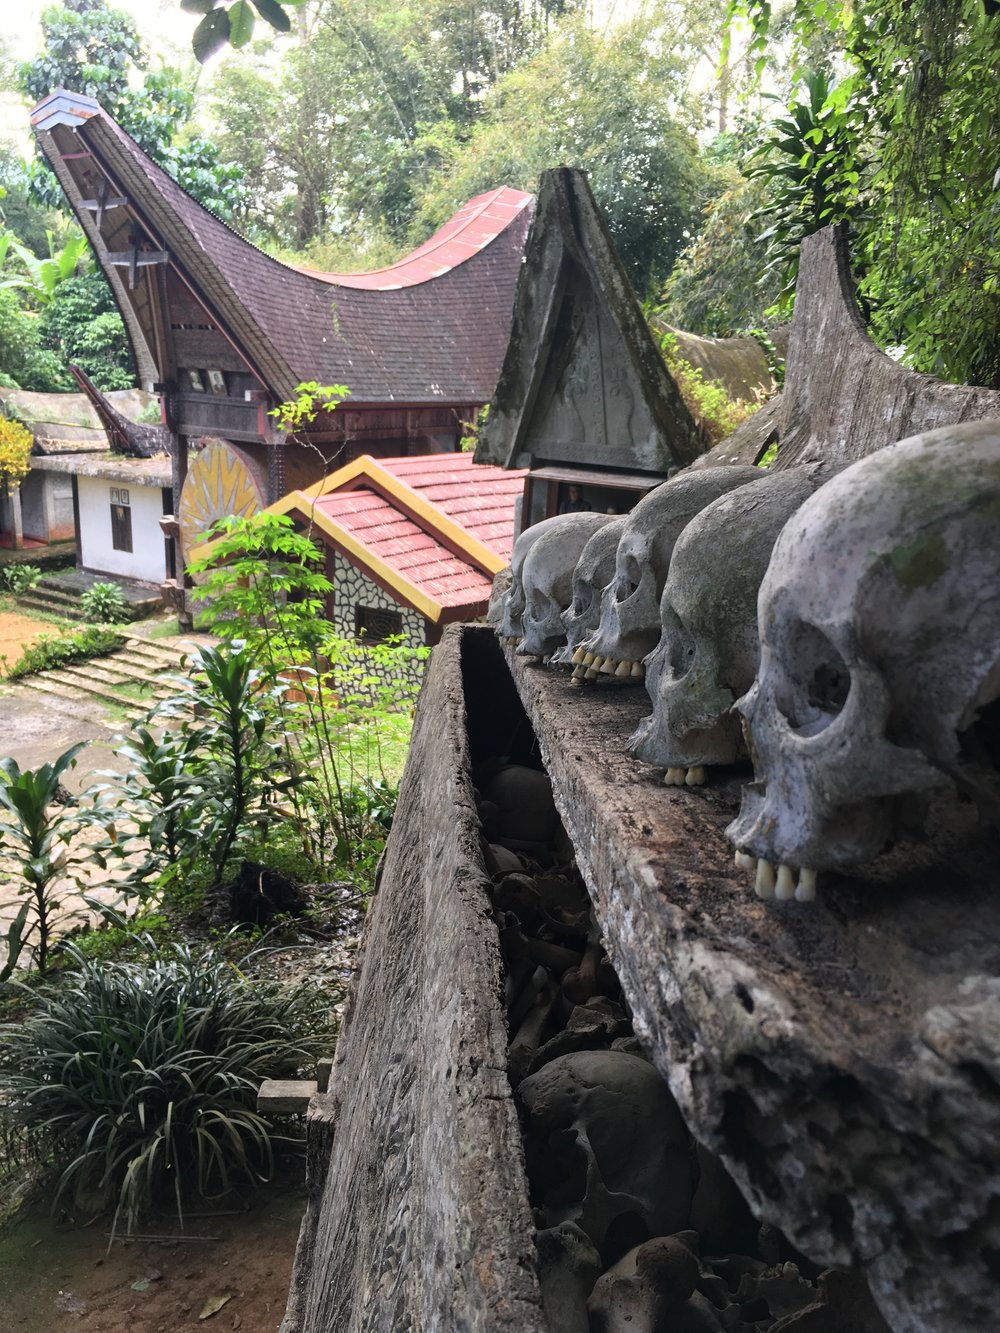 A Morbid, Bloody, and Hospitable Experience in Tana Toraja